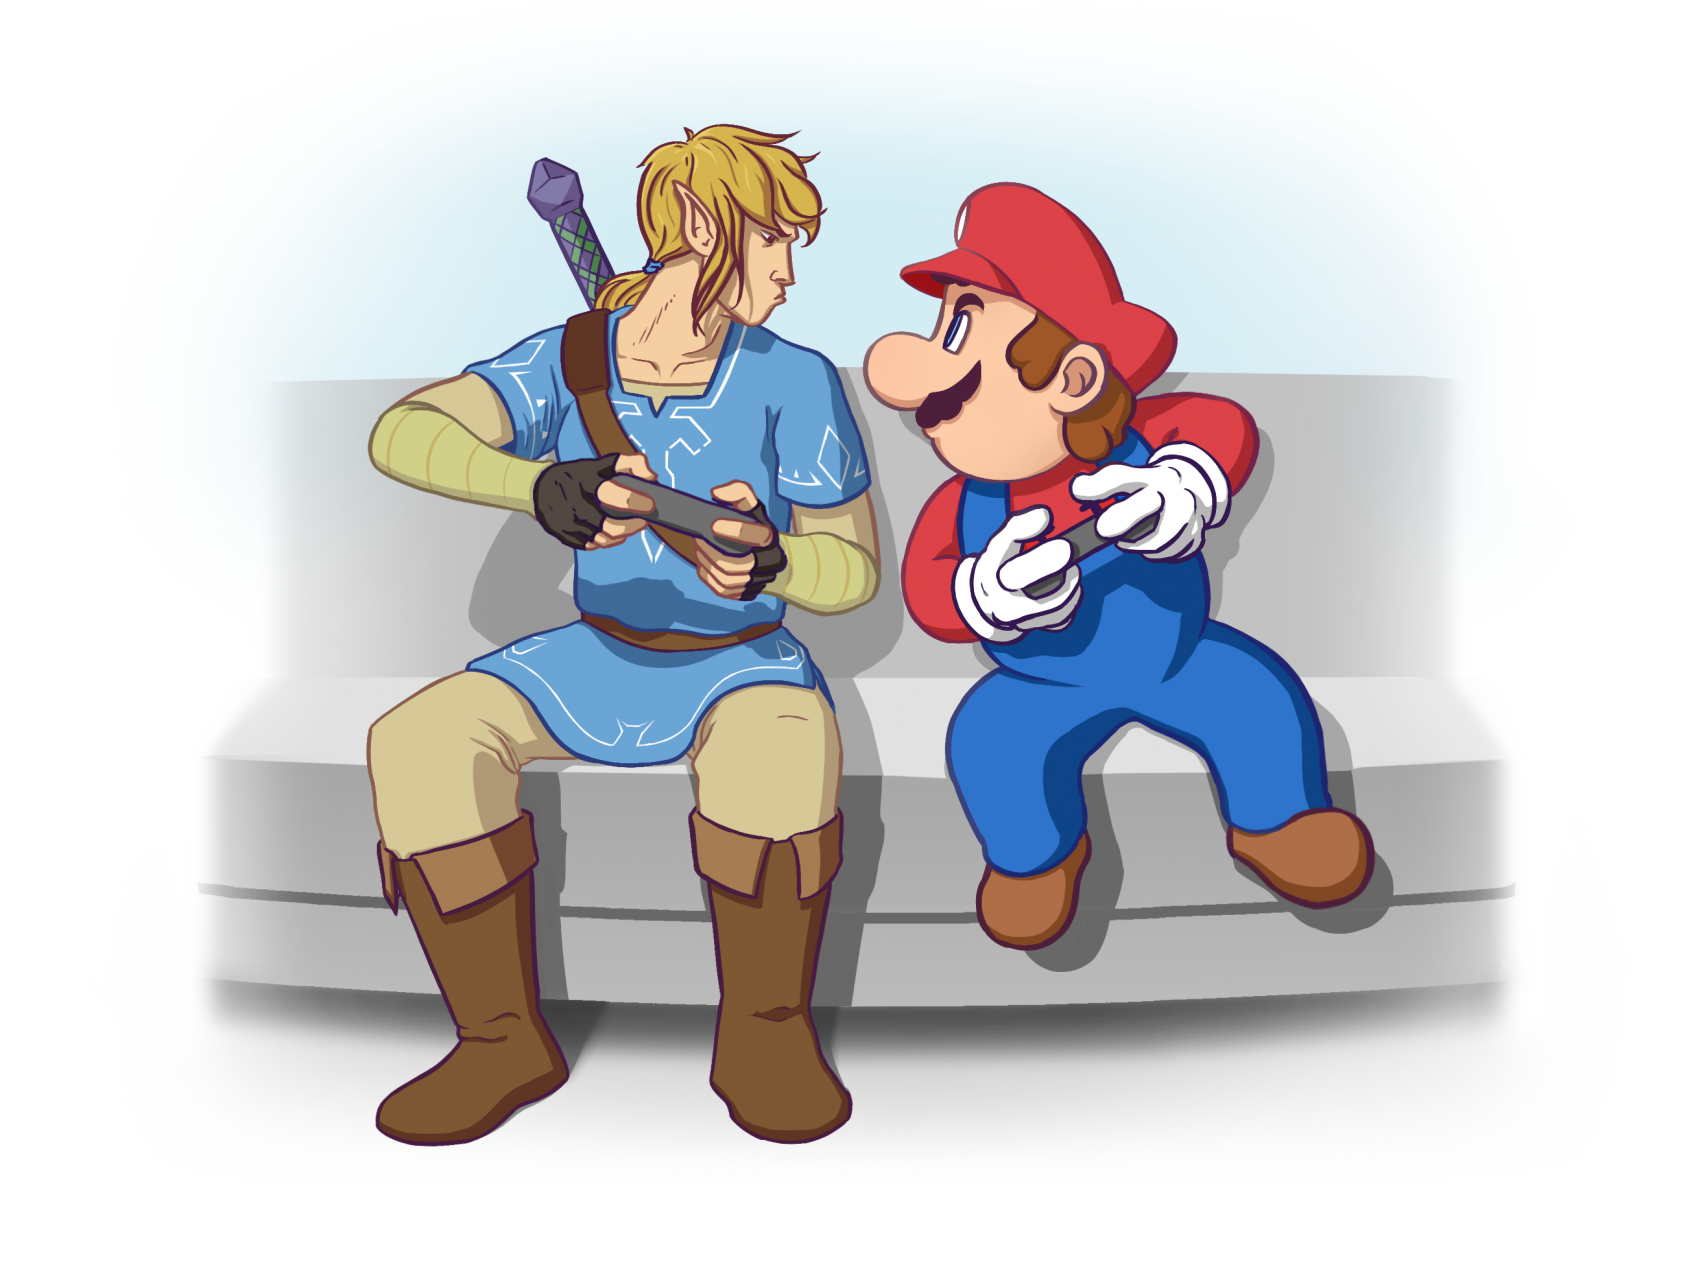 Illustration of Mario and Link from Nintendo games facing off on the couch while playing a video games.